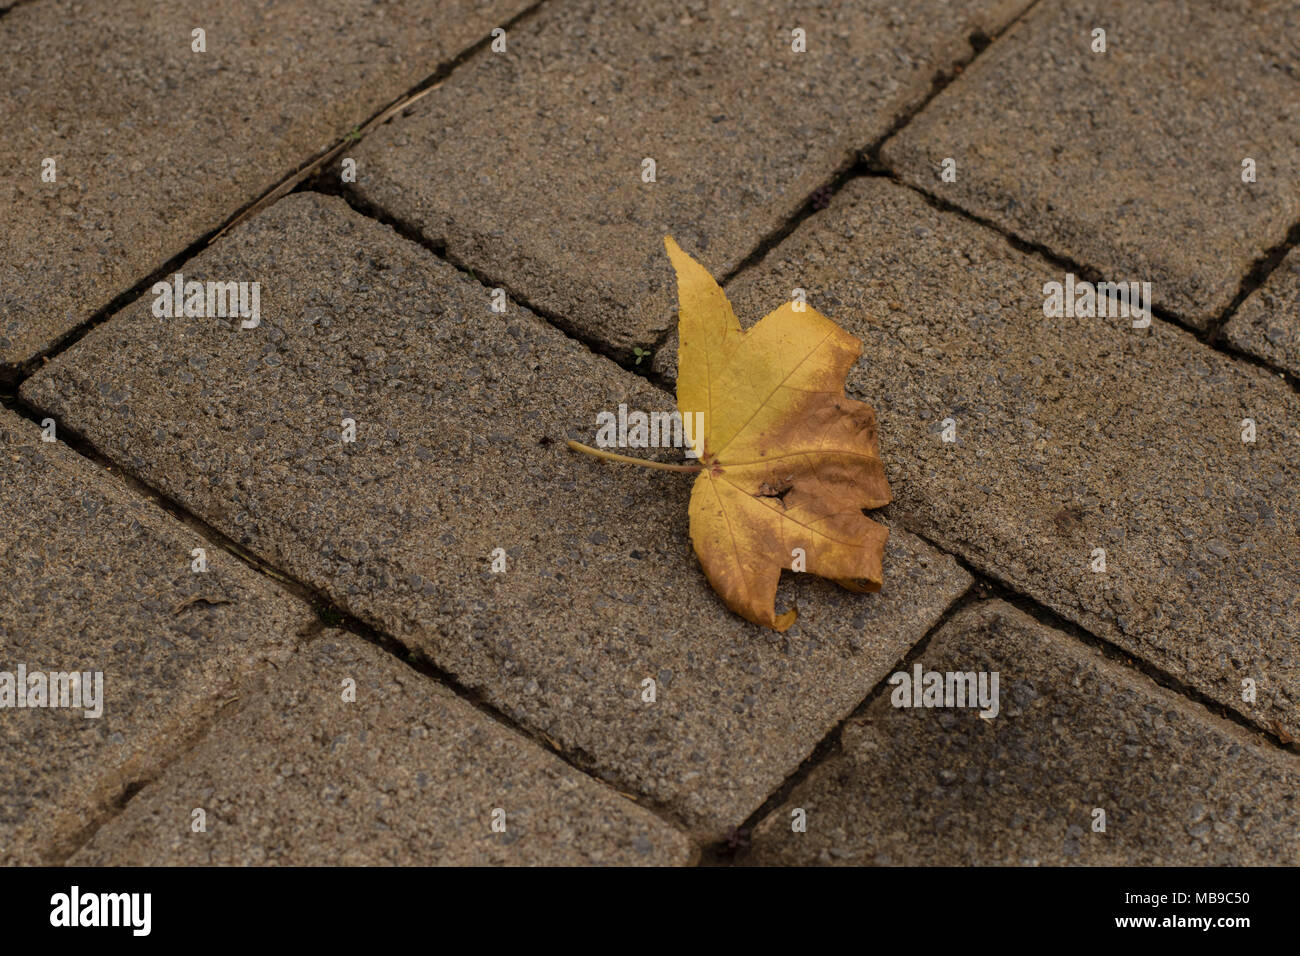 Yellow autumn leaf isolated on textured paving bricks image for background use with copy space - Stock Image